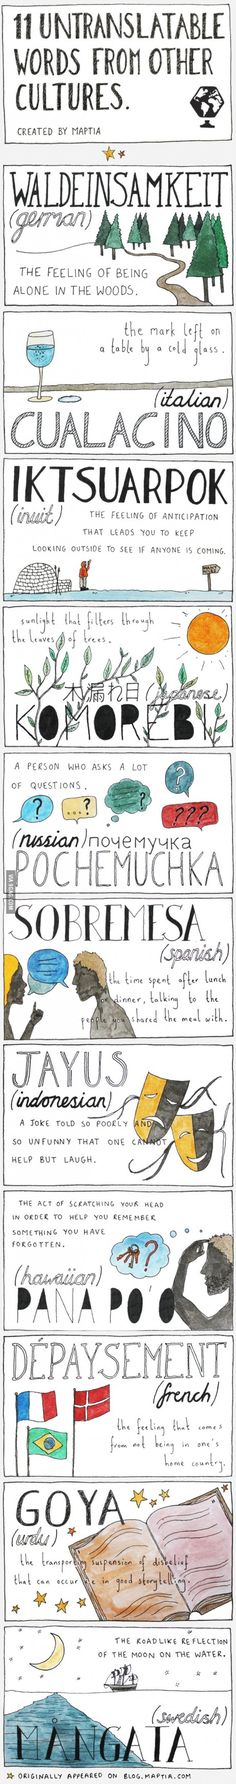 Untranslatable Words, shows a lot about different cultures @Jenna Branson . Pretty interesting